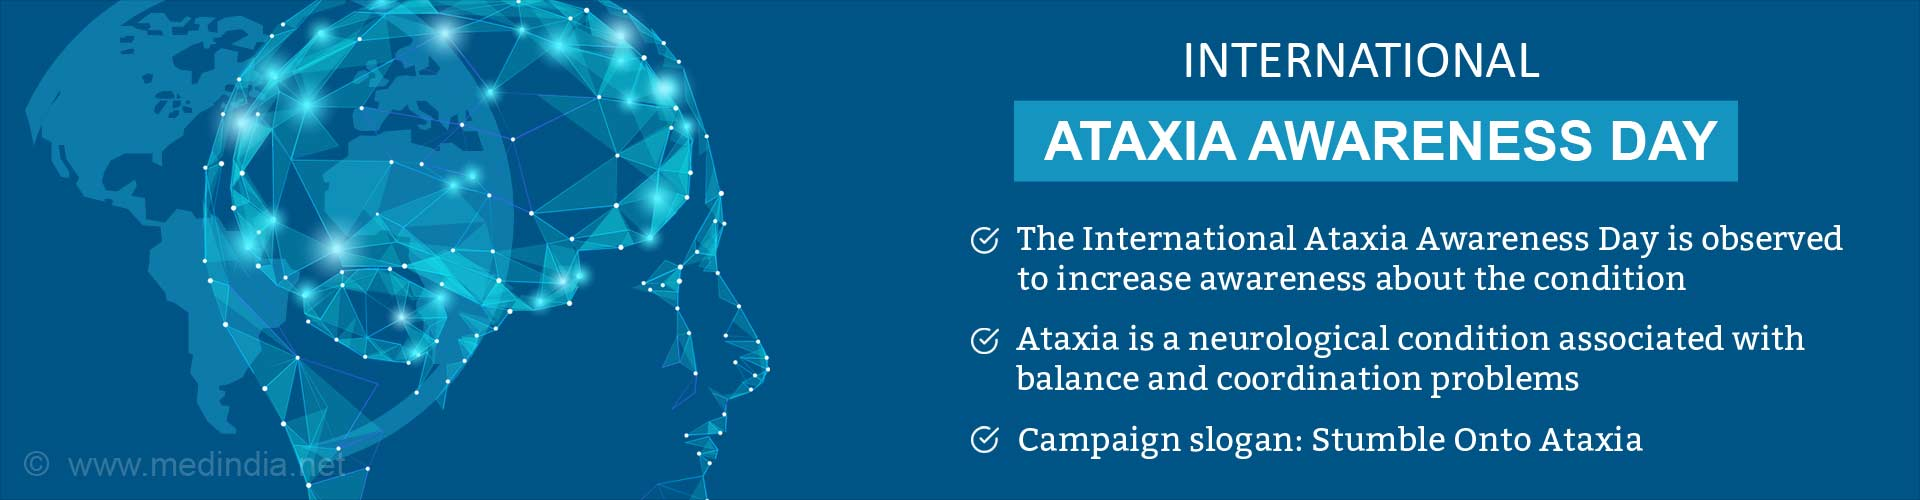 International Ataxia Awareness Day